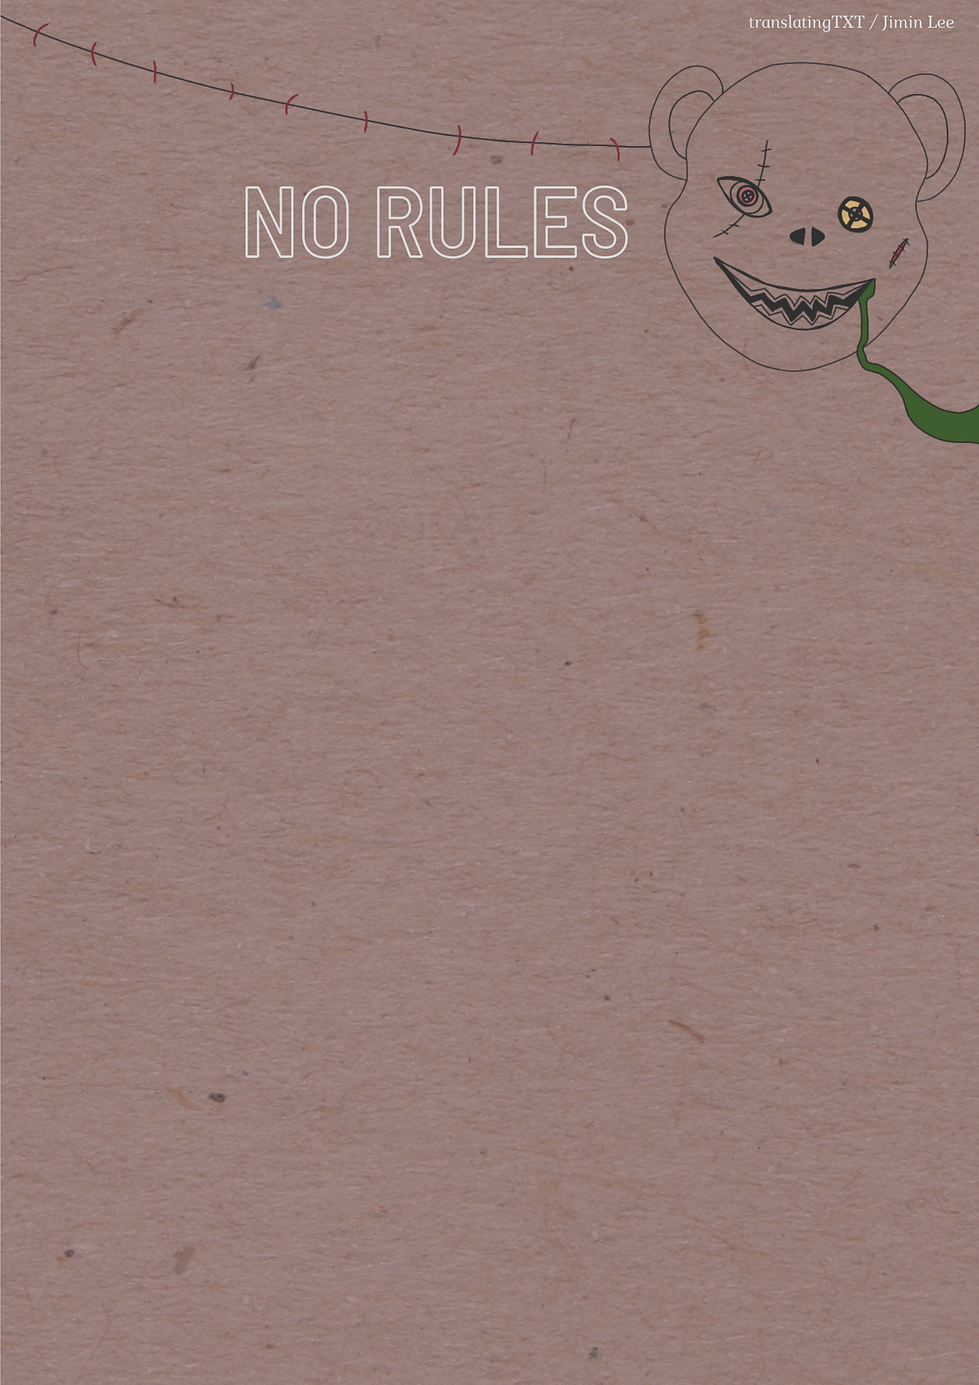 norules1.png